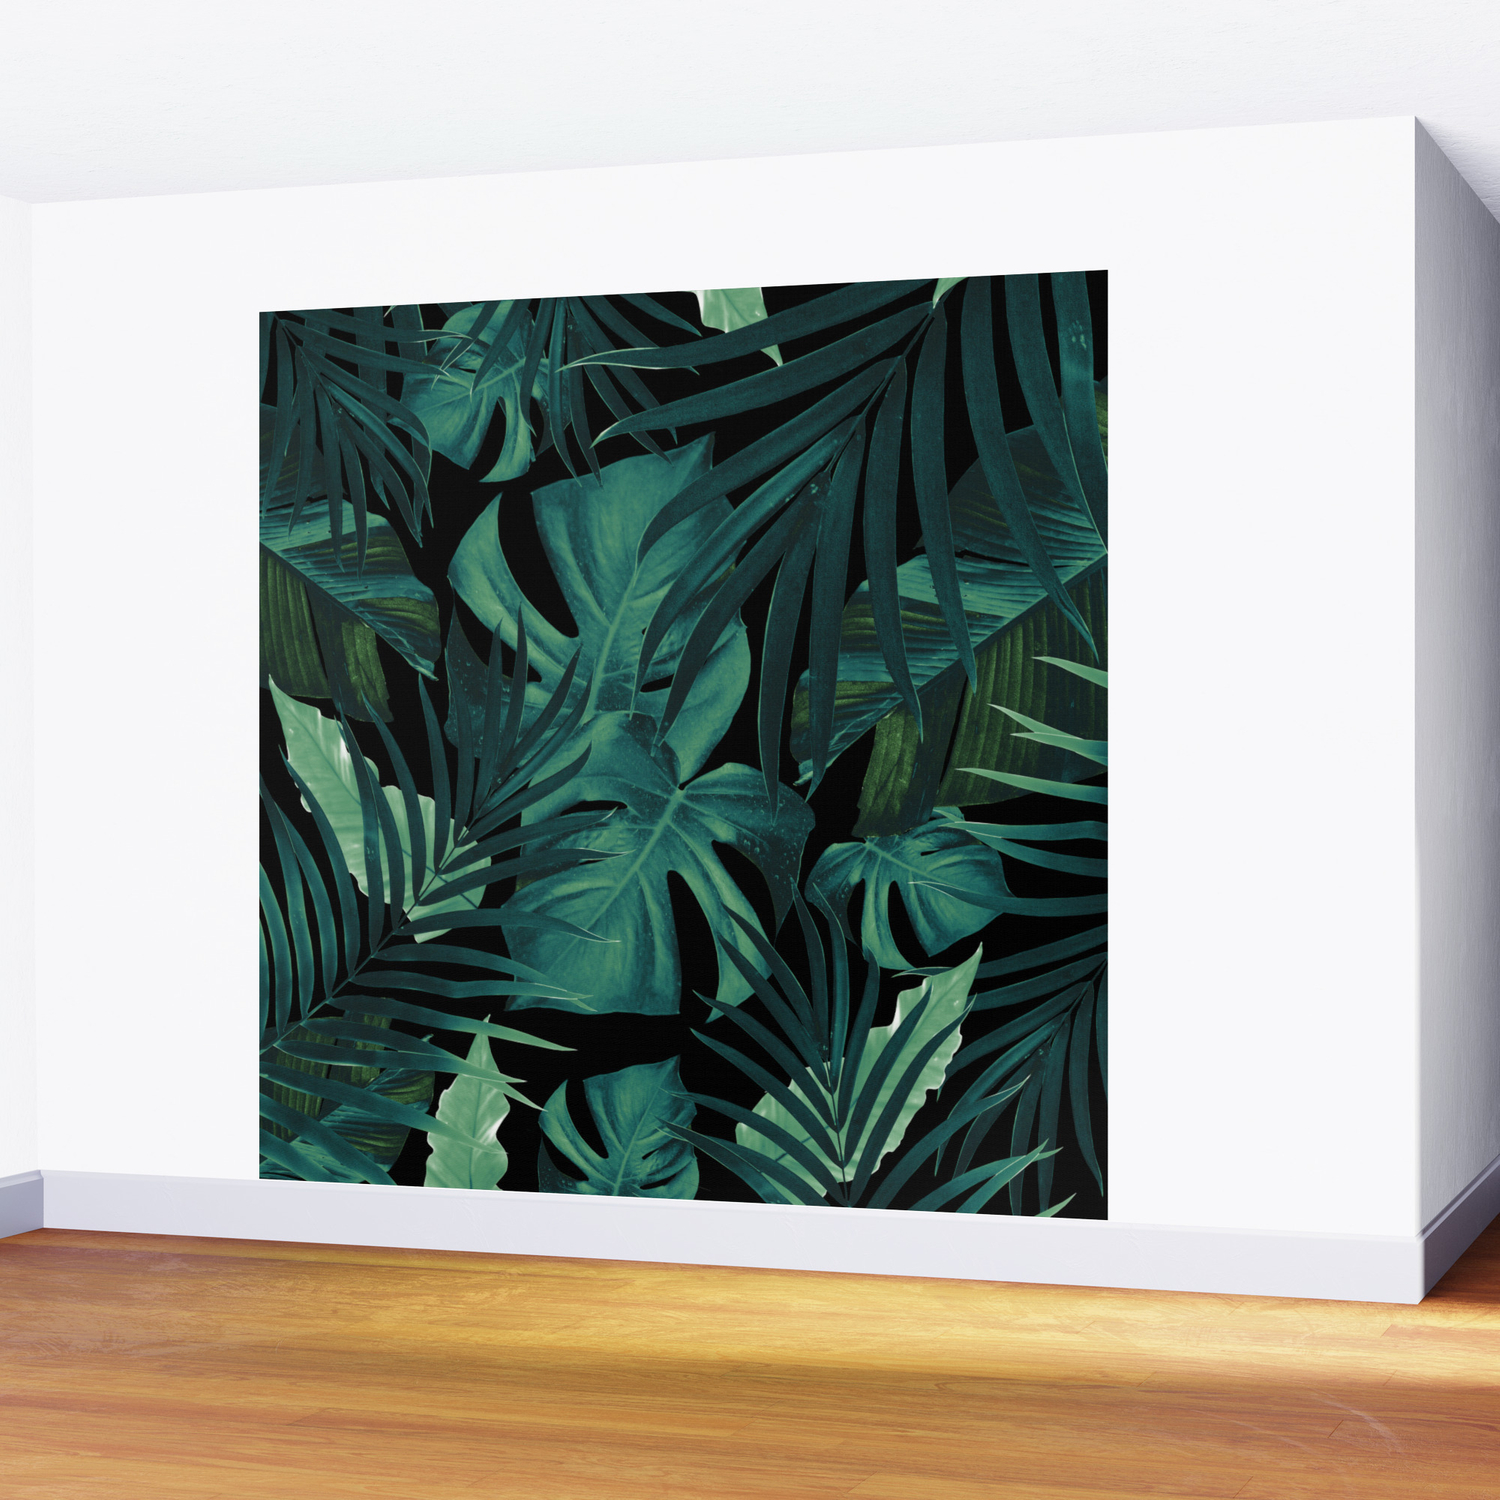 Tropical jungle night leaves pattern 1 tropical decor art society6 wall mural